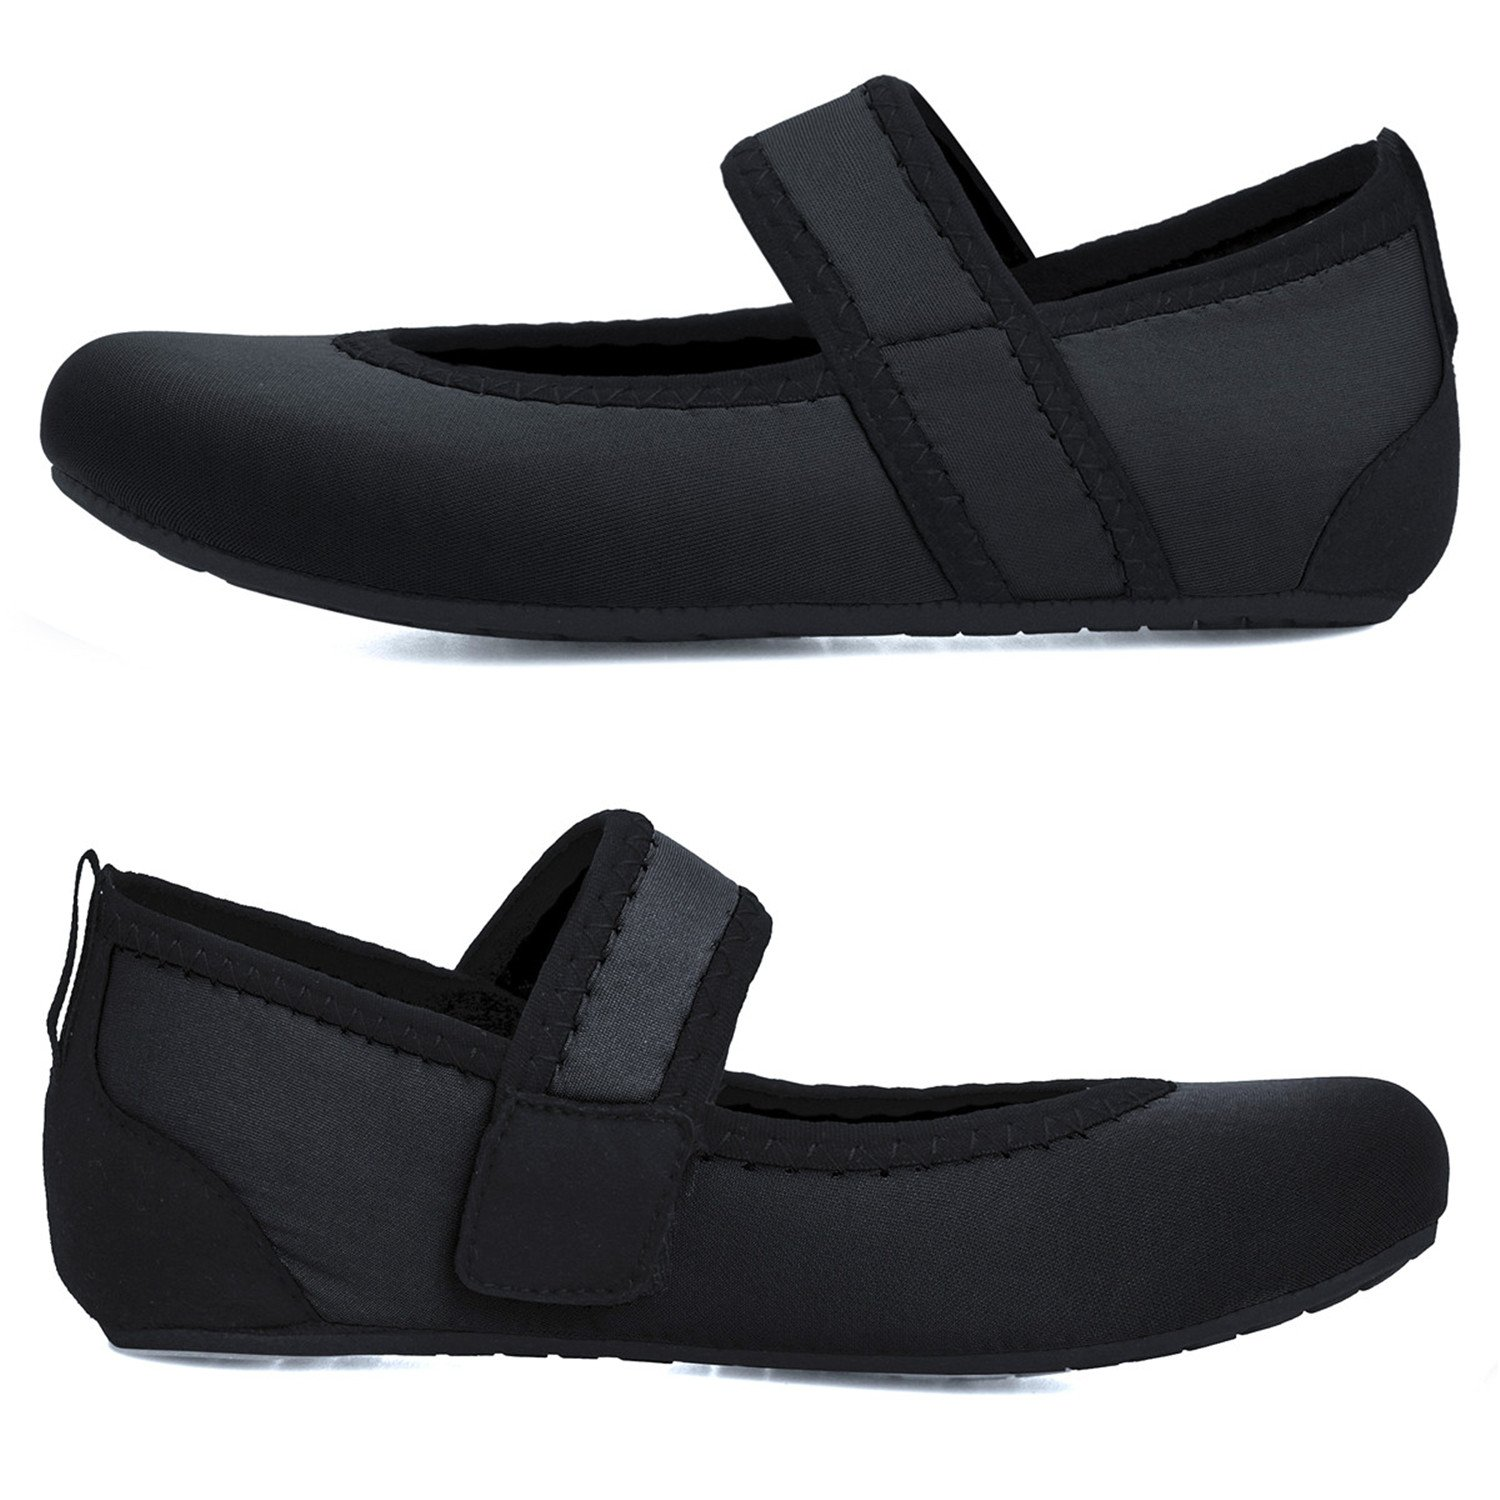 Centipede Demon Water Shoes Flexible Flats for Womens Traveling Flat Shoes Dark by Centipede Demon (Image #5)